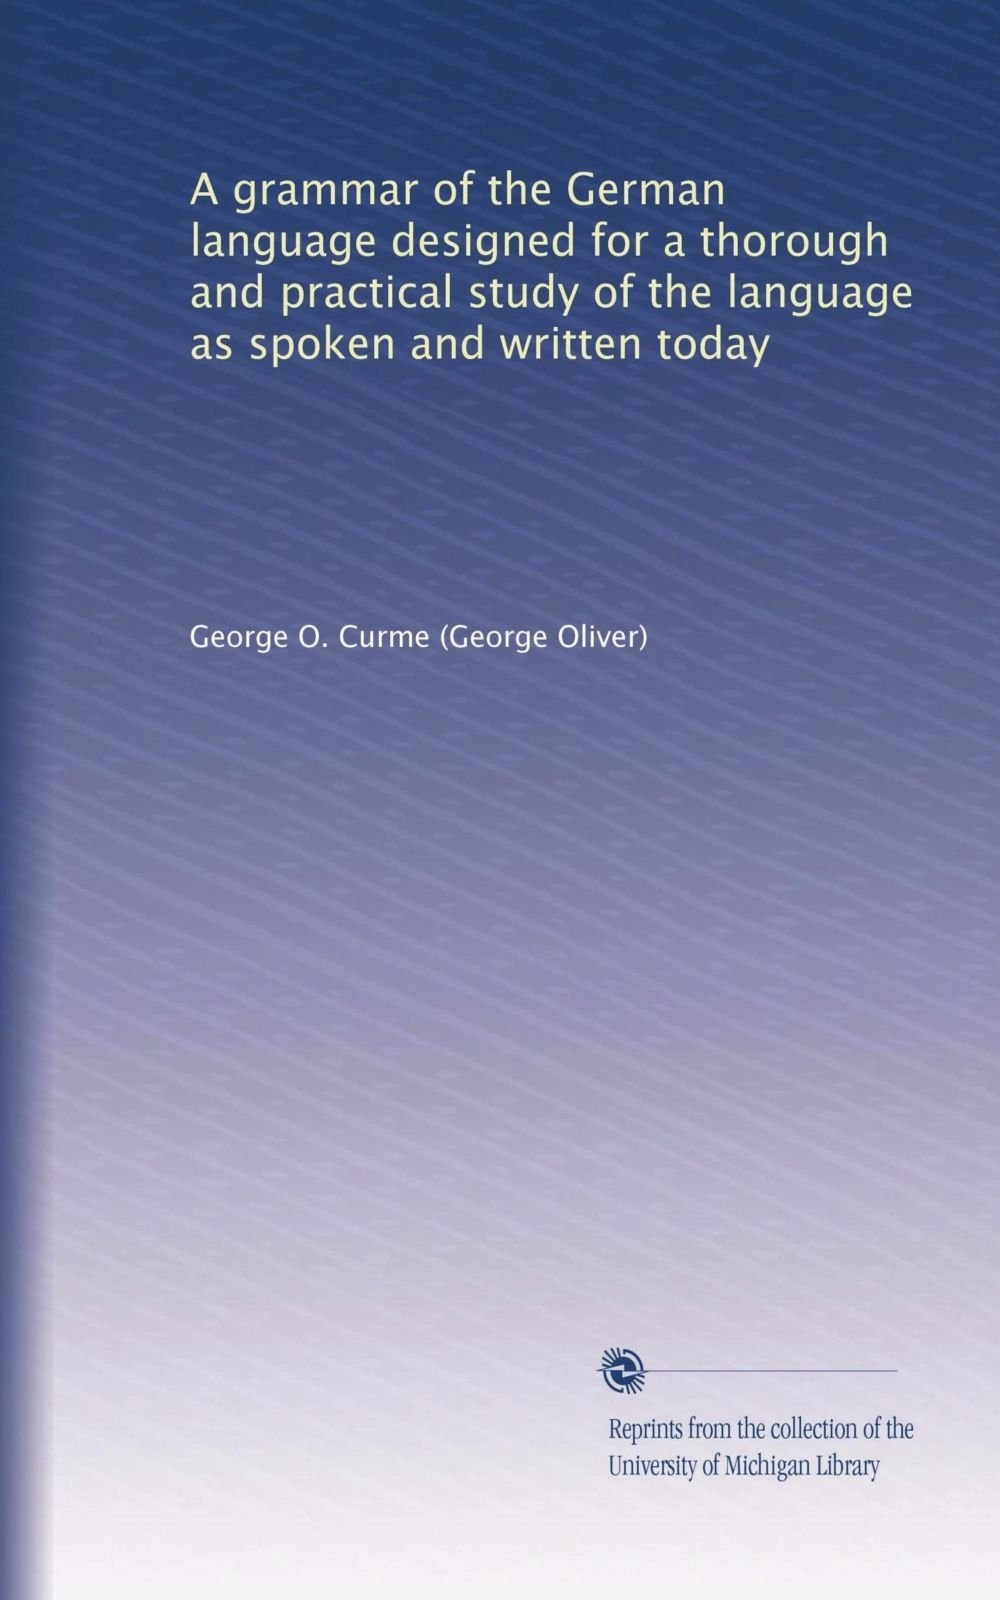 A grammar of the German language designed for a thorough and practical study of the language as spoken and written today ePub fb2 ebook